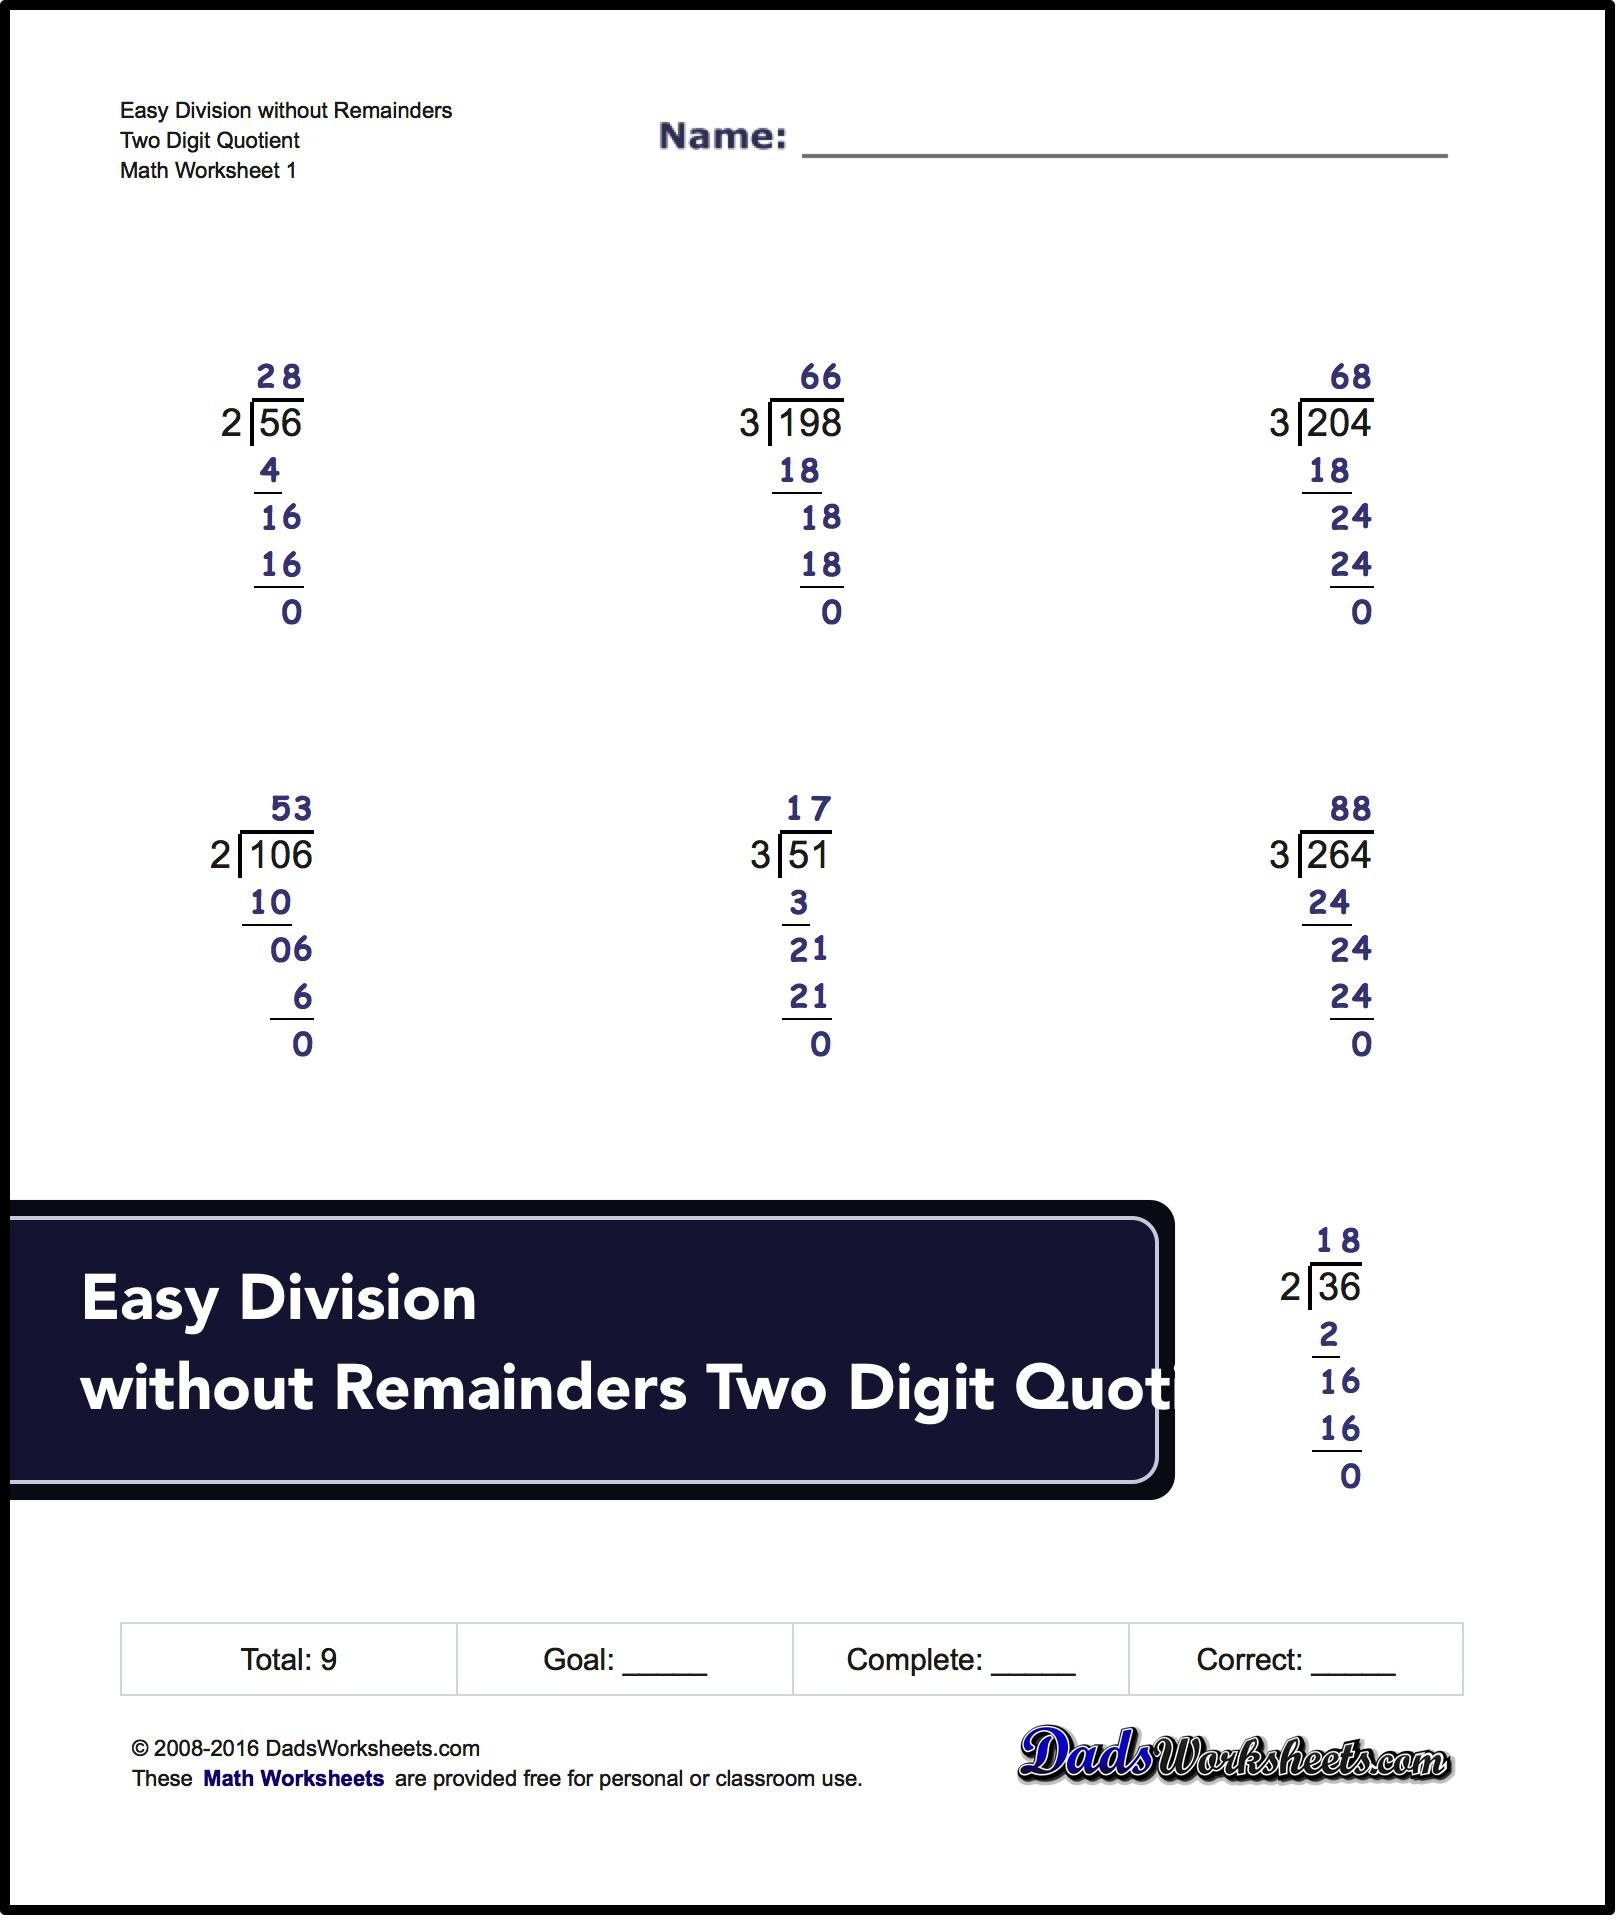 Practice Your Division Skills With These Free Math